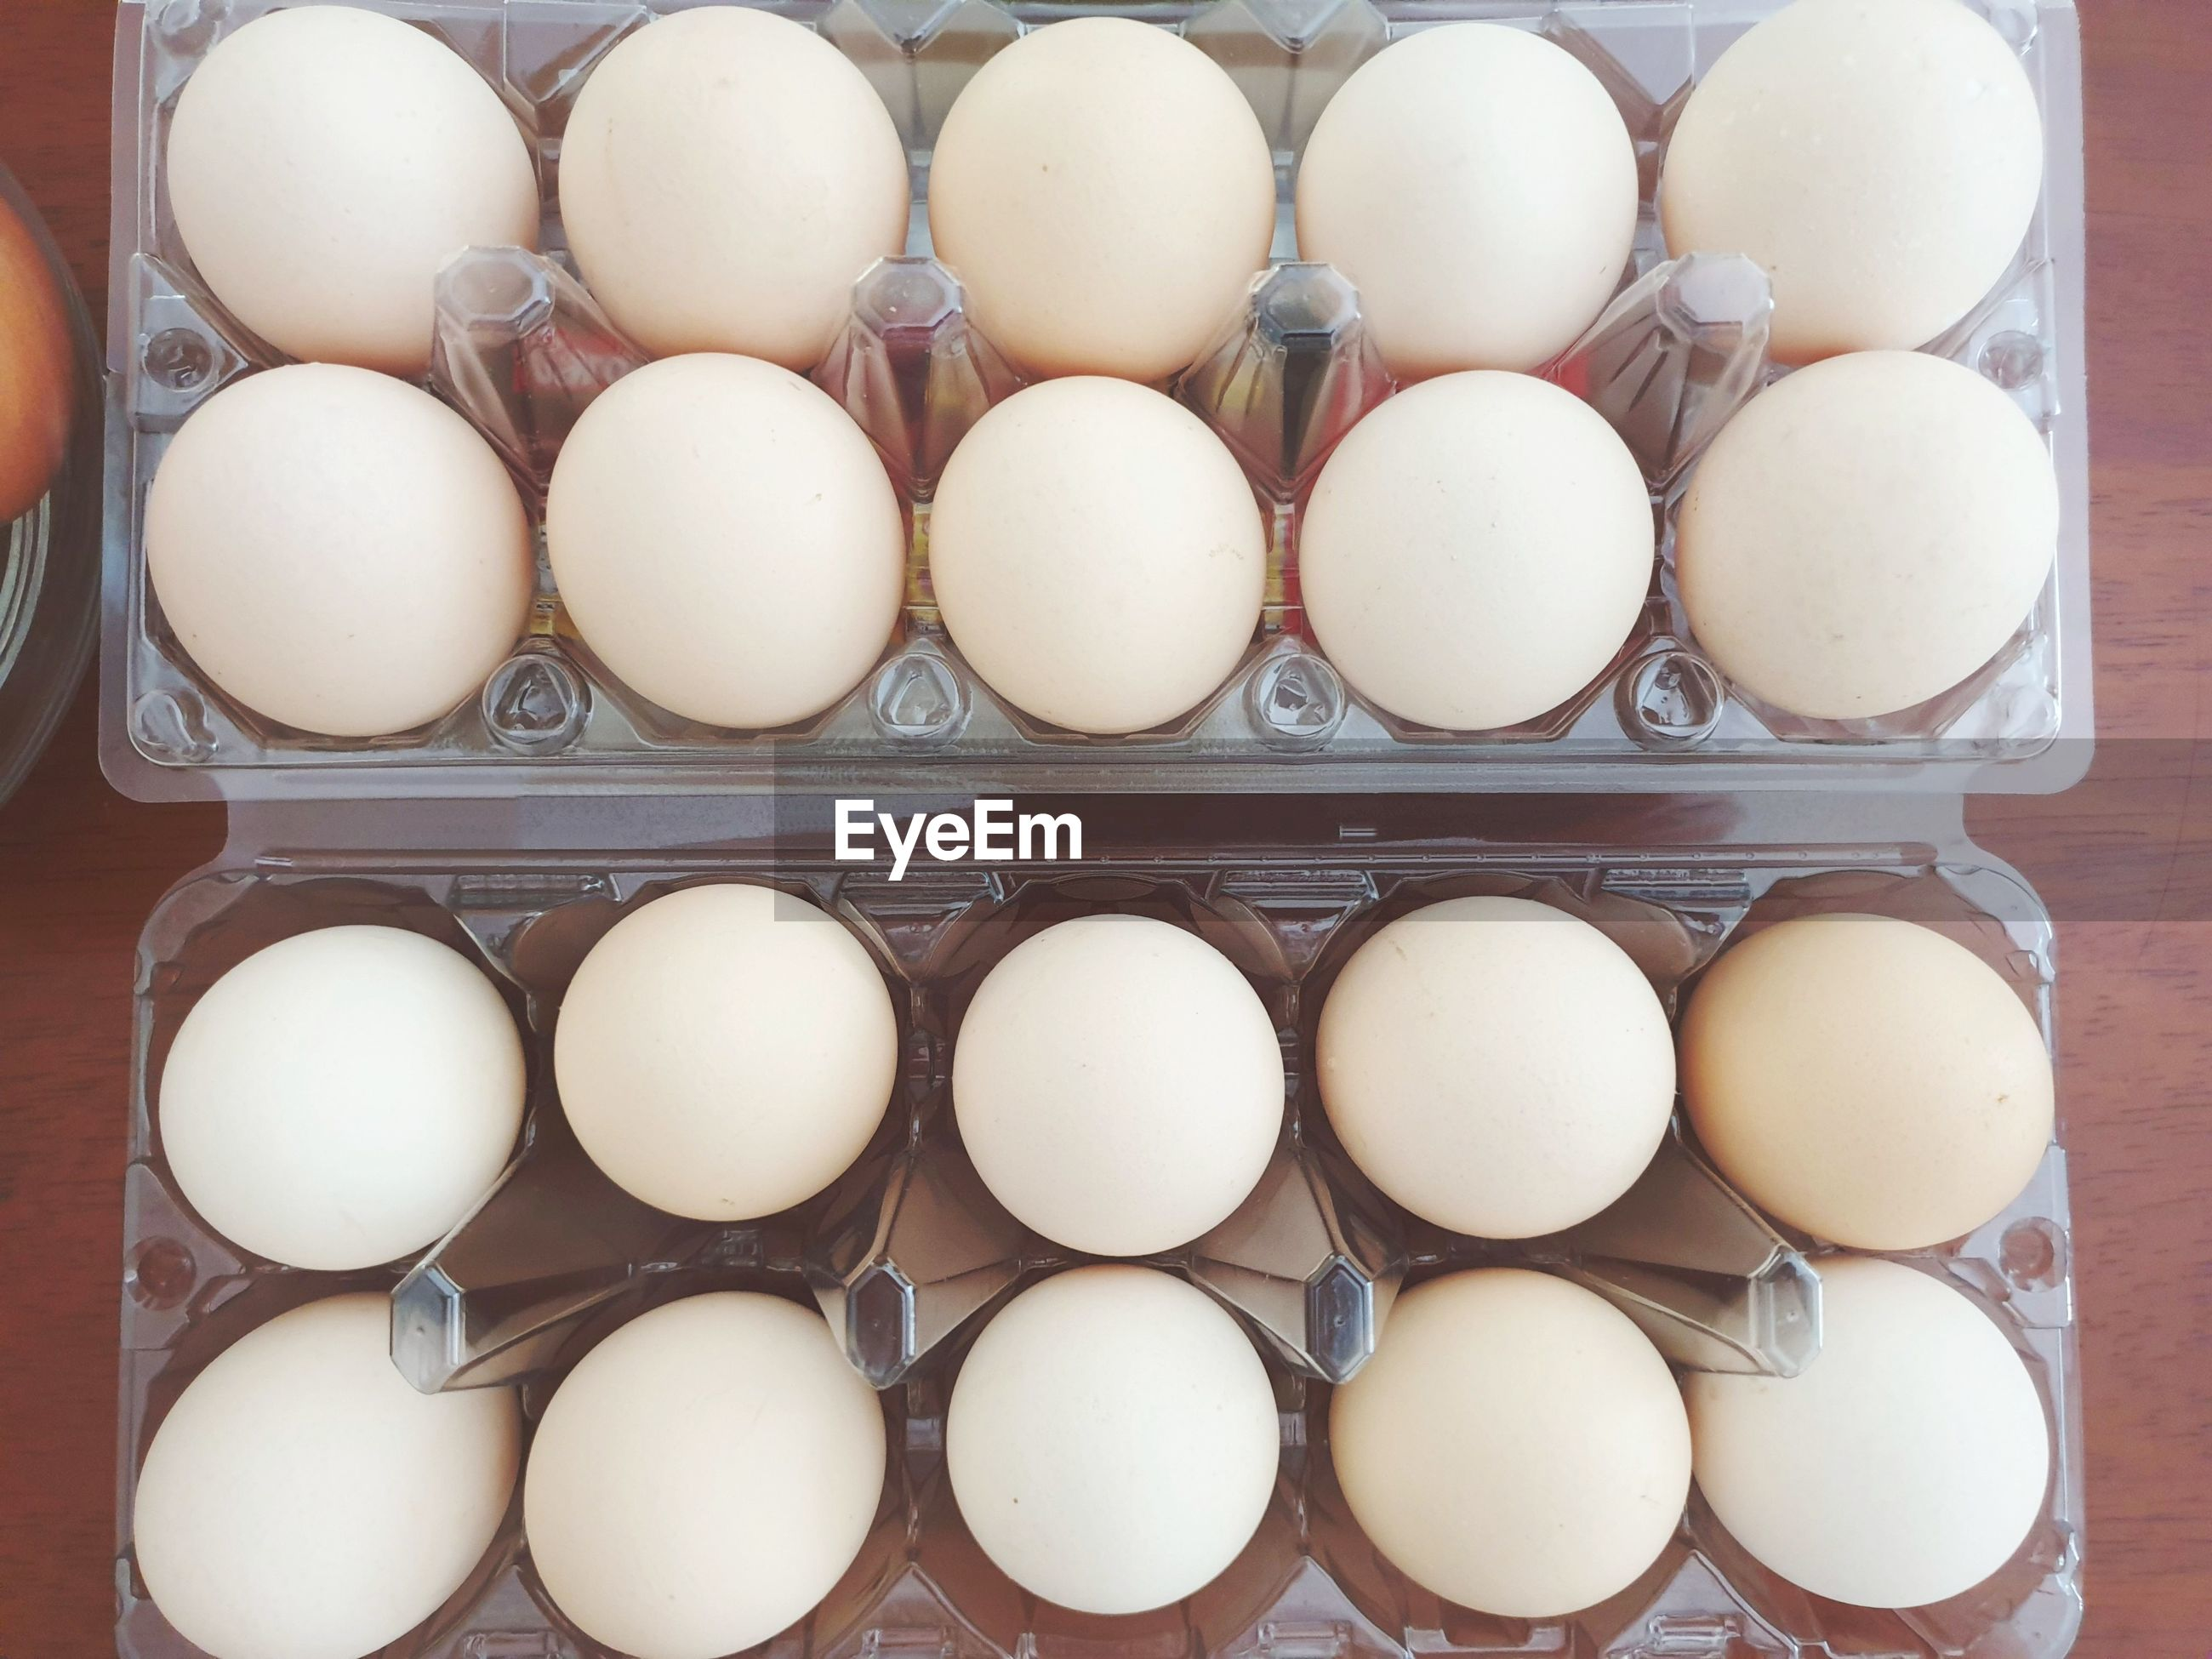 HIGH ANGLE VIEW OF EGGS IN CRATE ON WHITE BACKGROUND